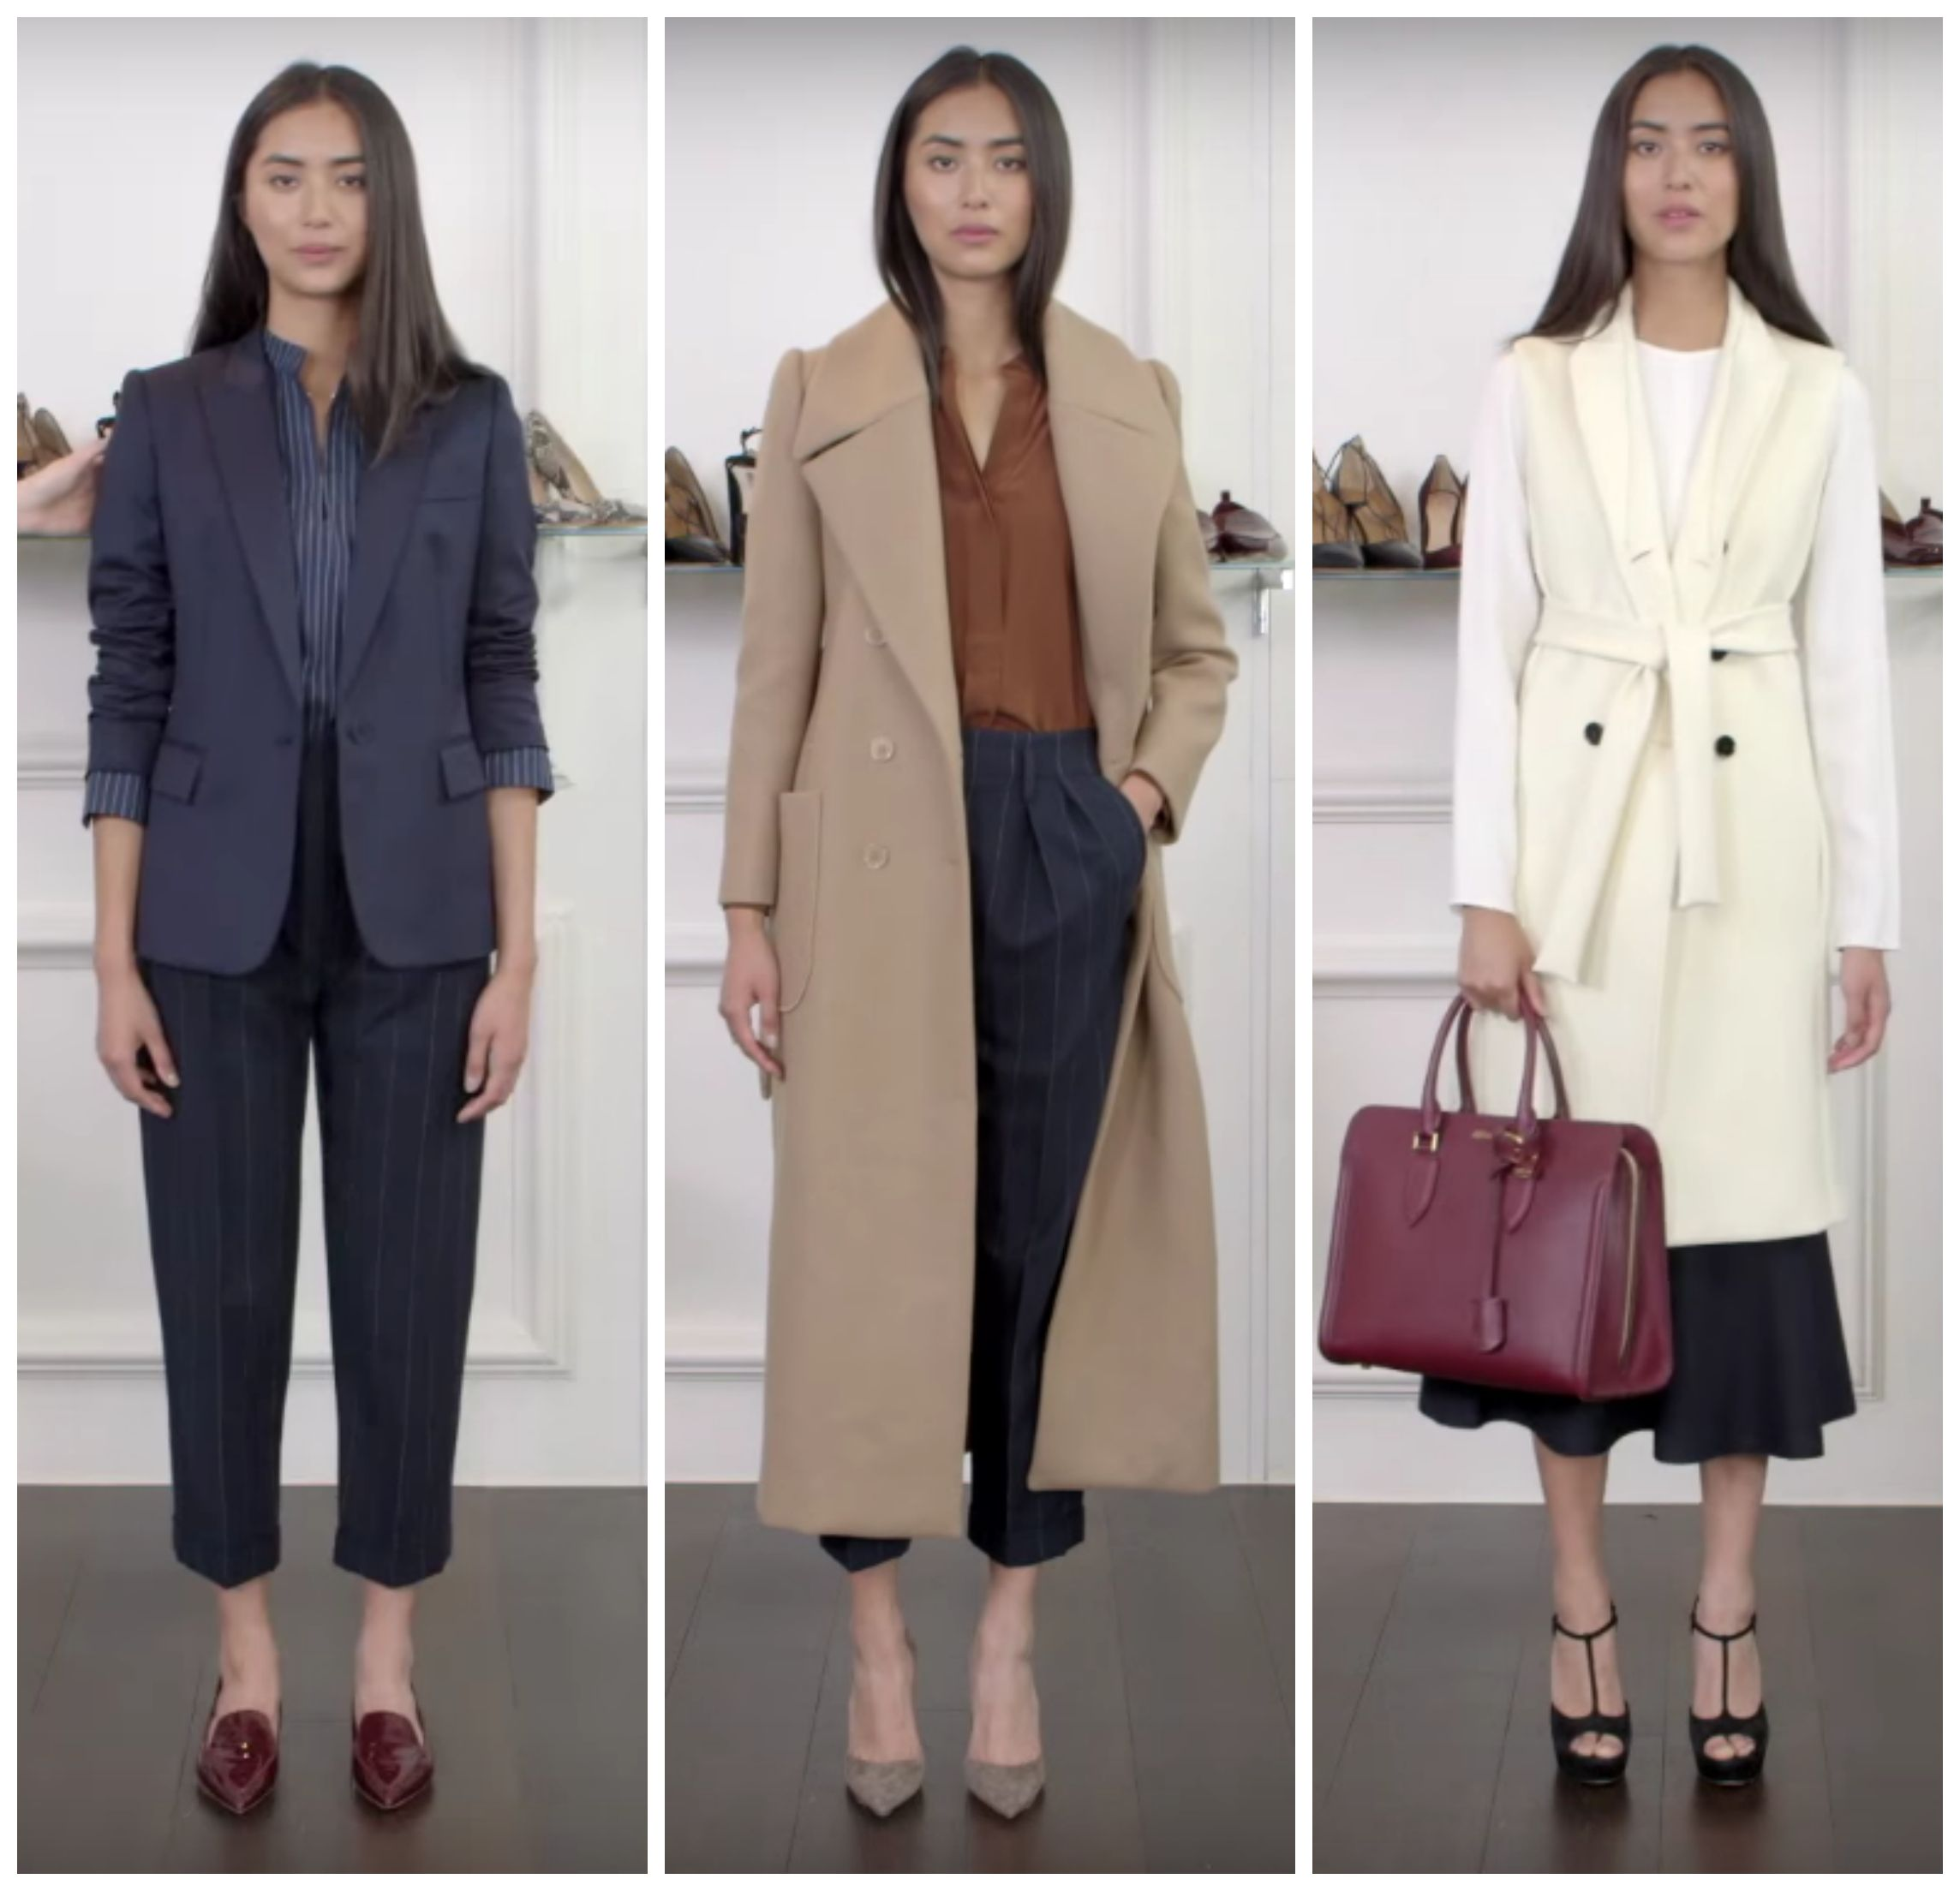 How To Get A Job At Net A Porter